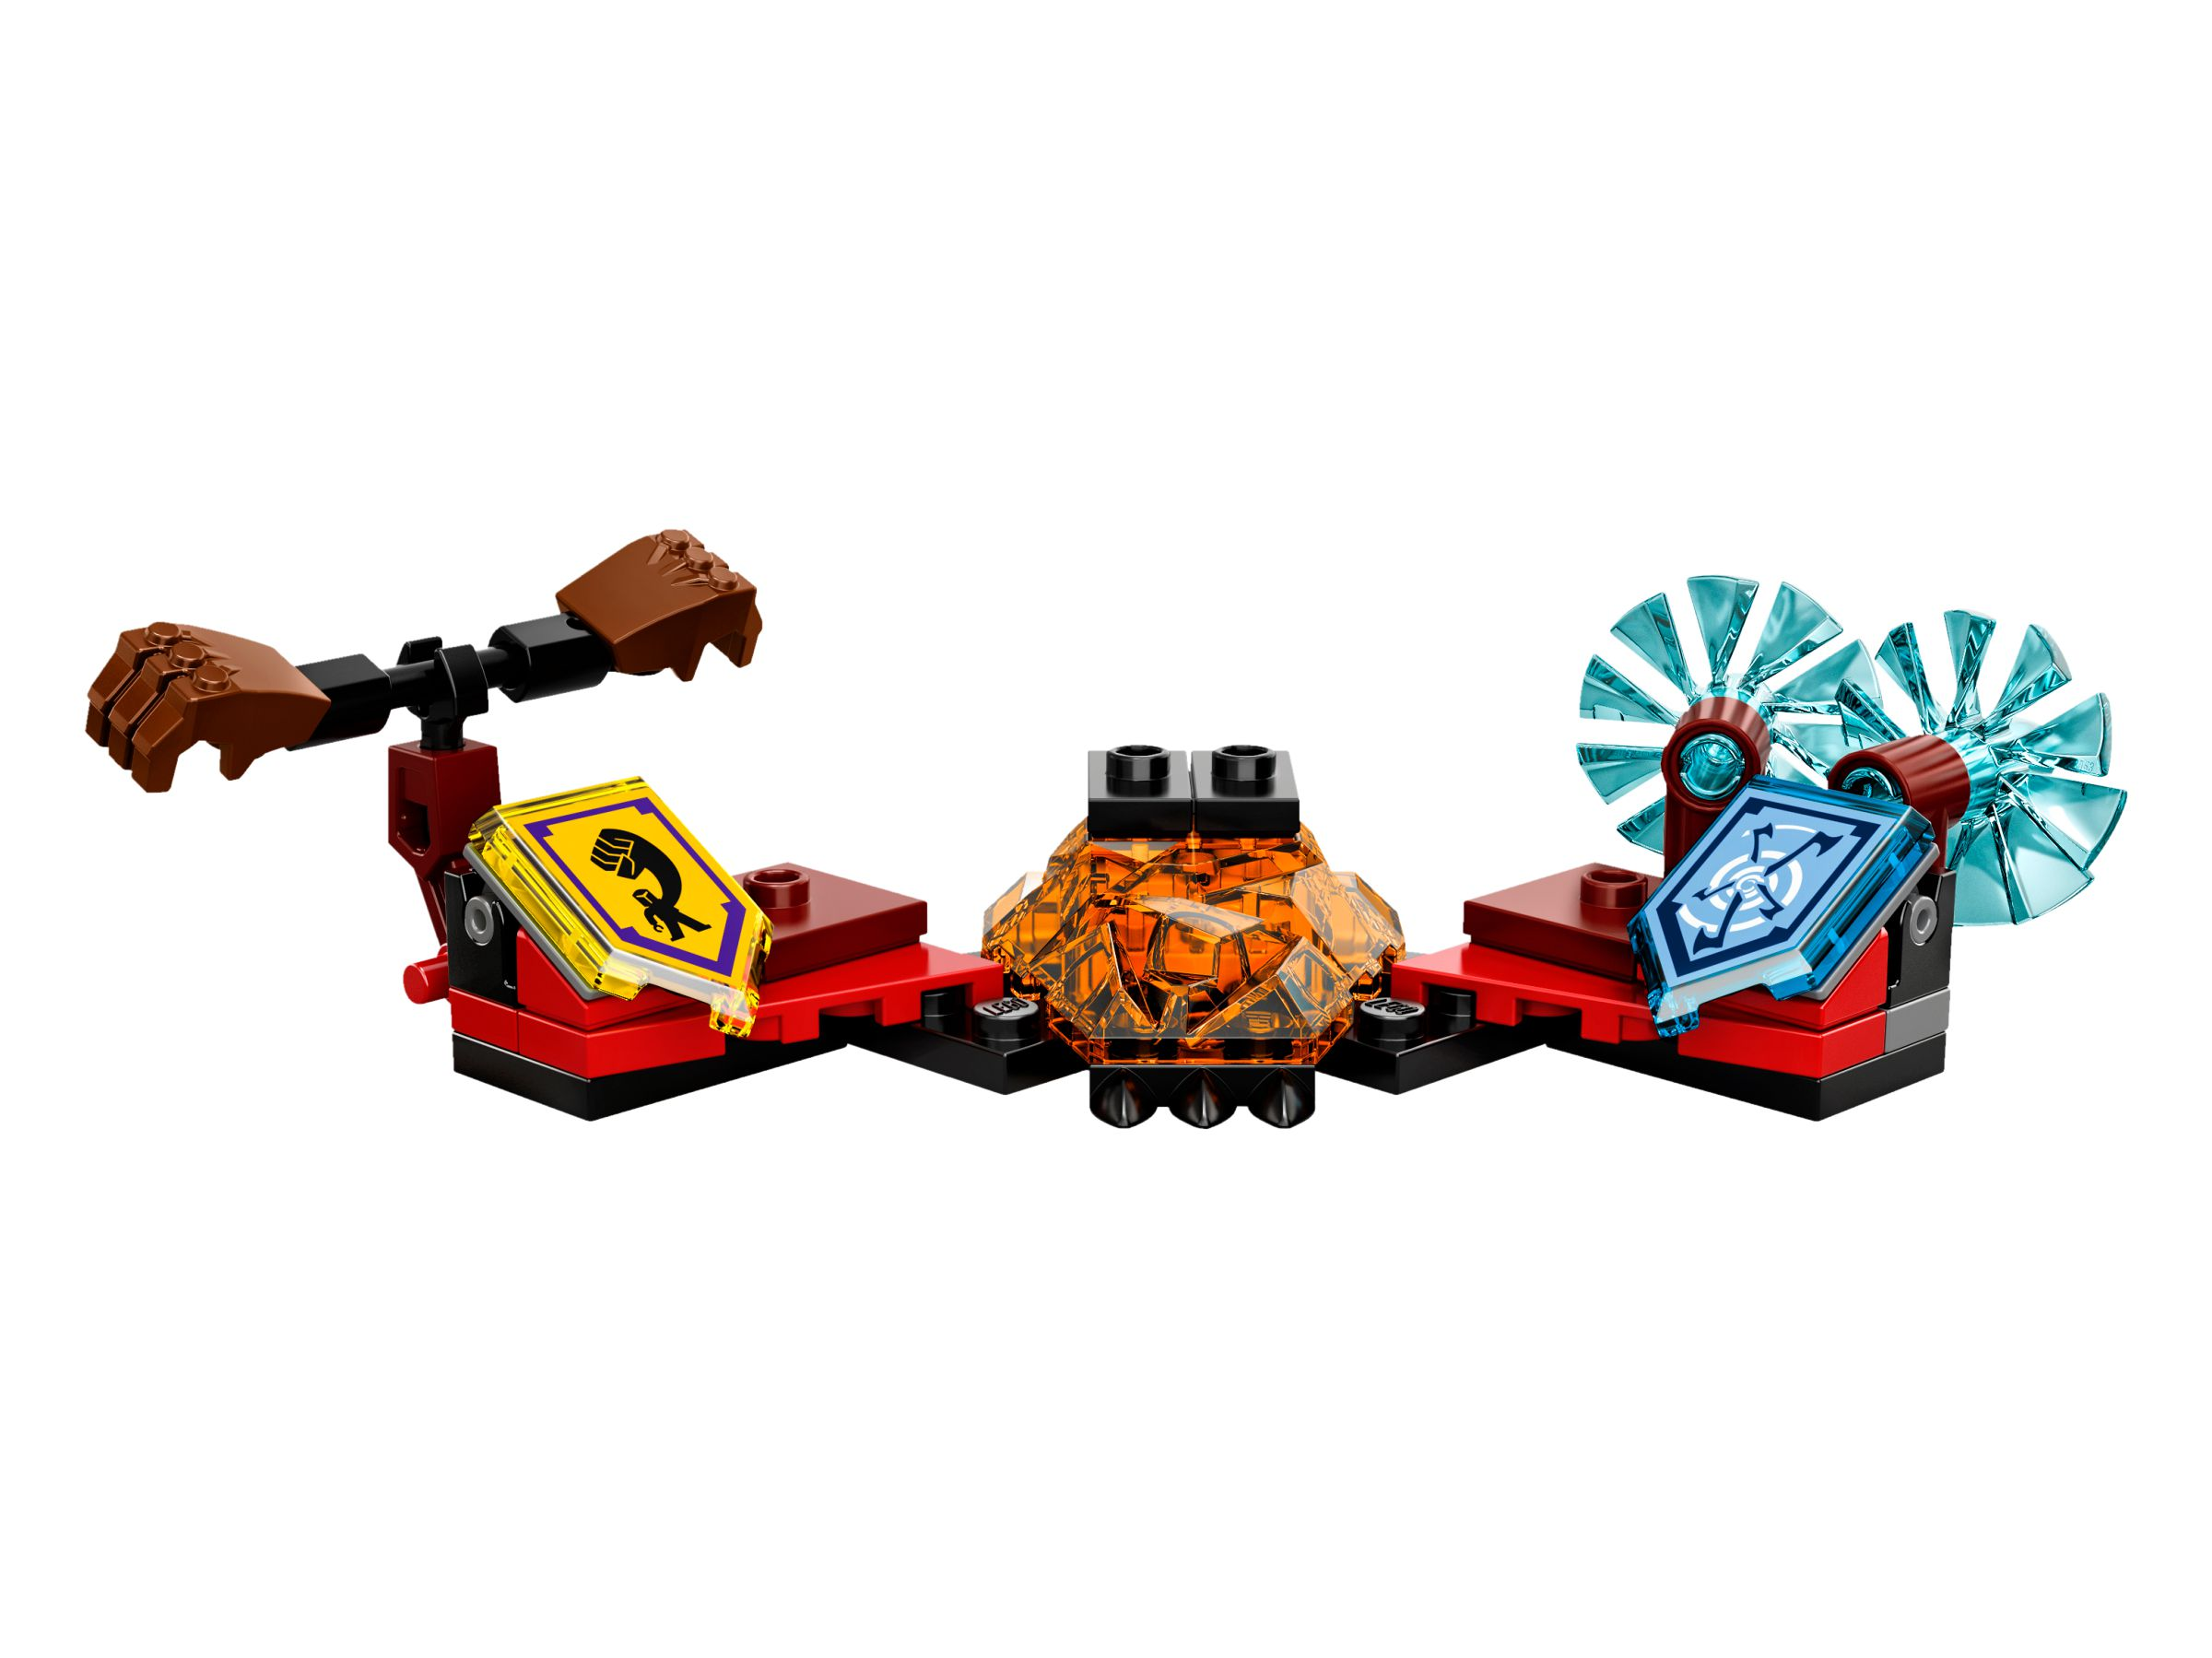 LEGO Nexo Knights 70338 Ultimativer General Magmar LEGO_70338_alt3.jpg